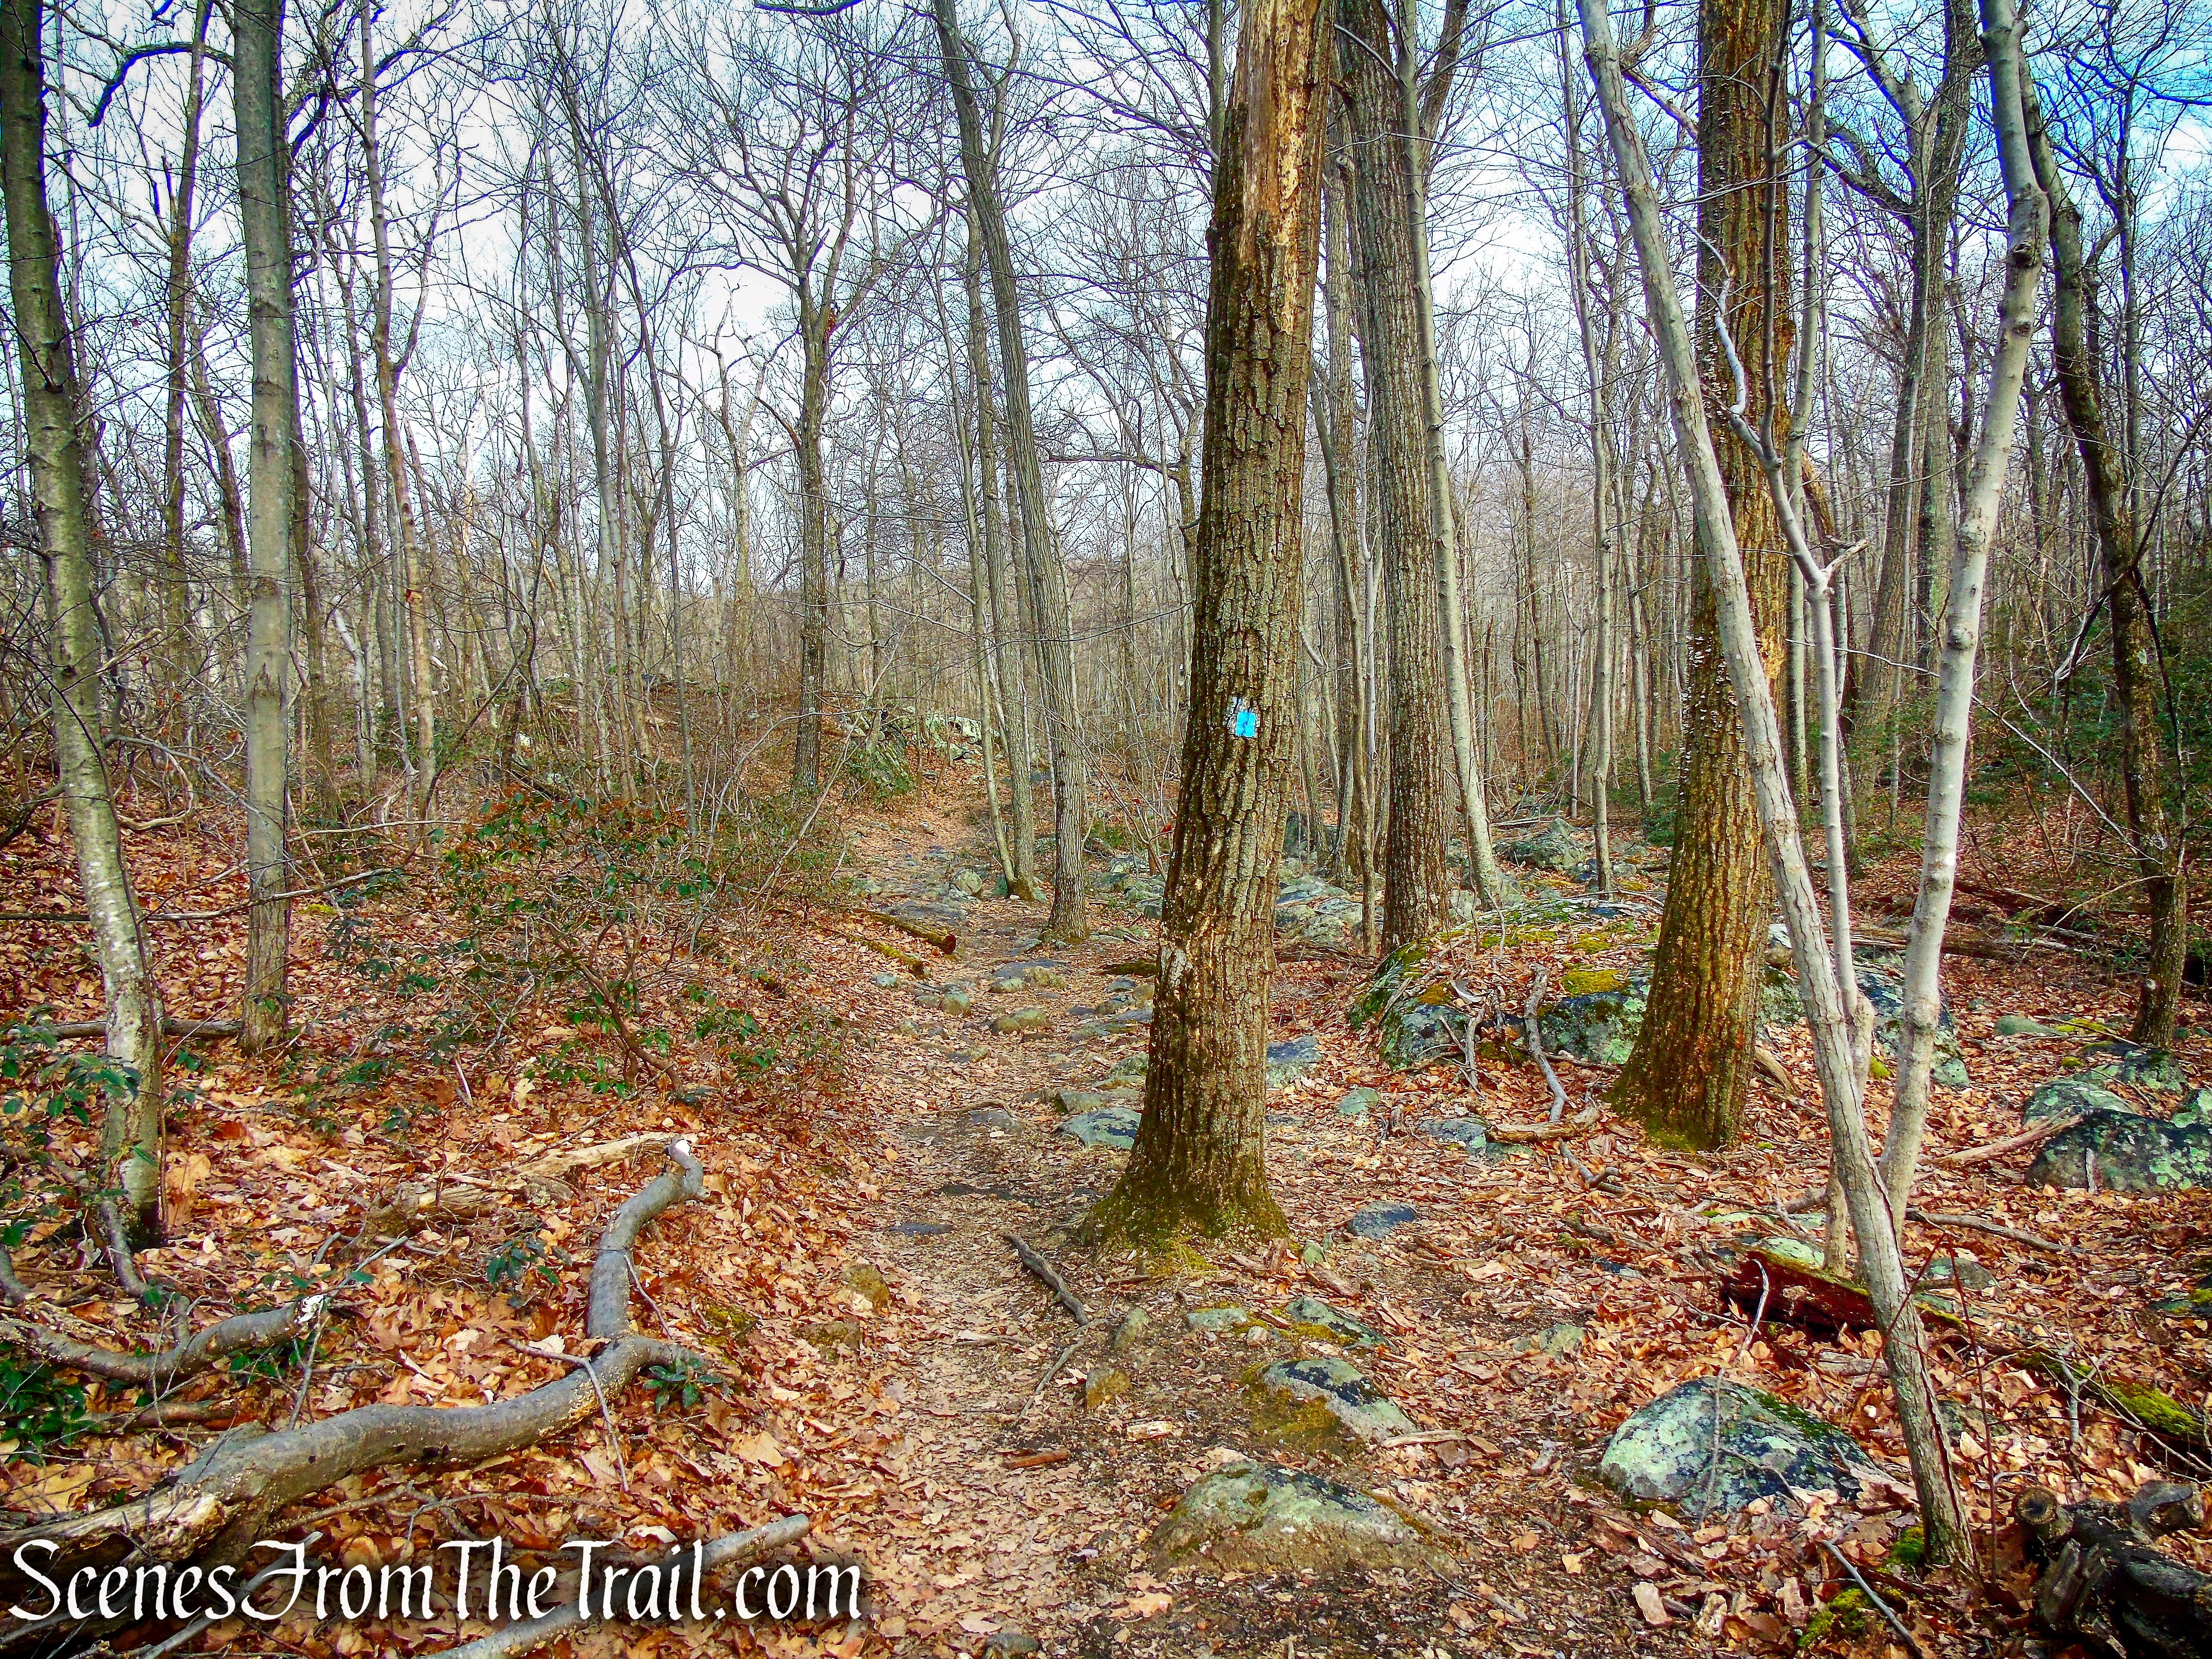 Blue Trail - Pyramid Mountain Natural Historic Area